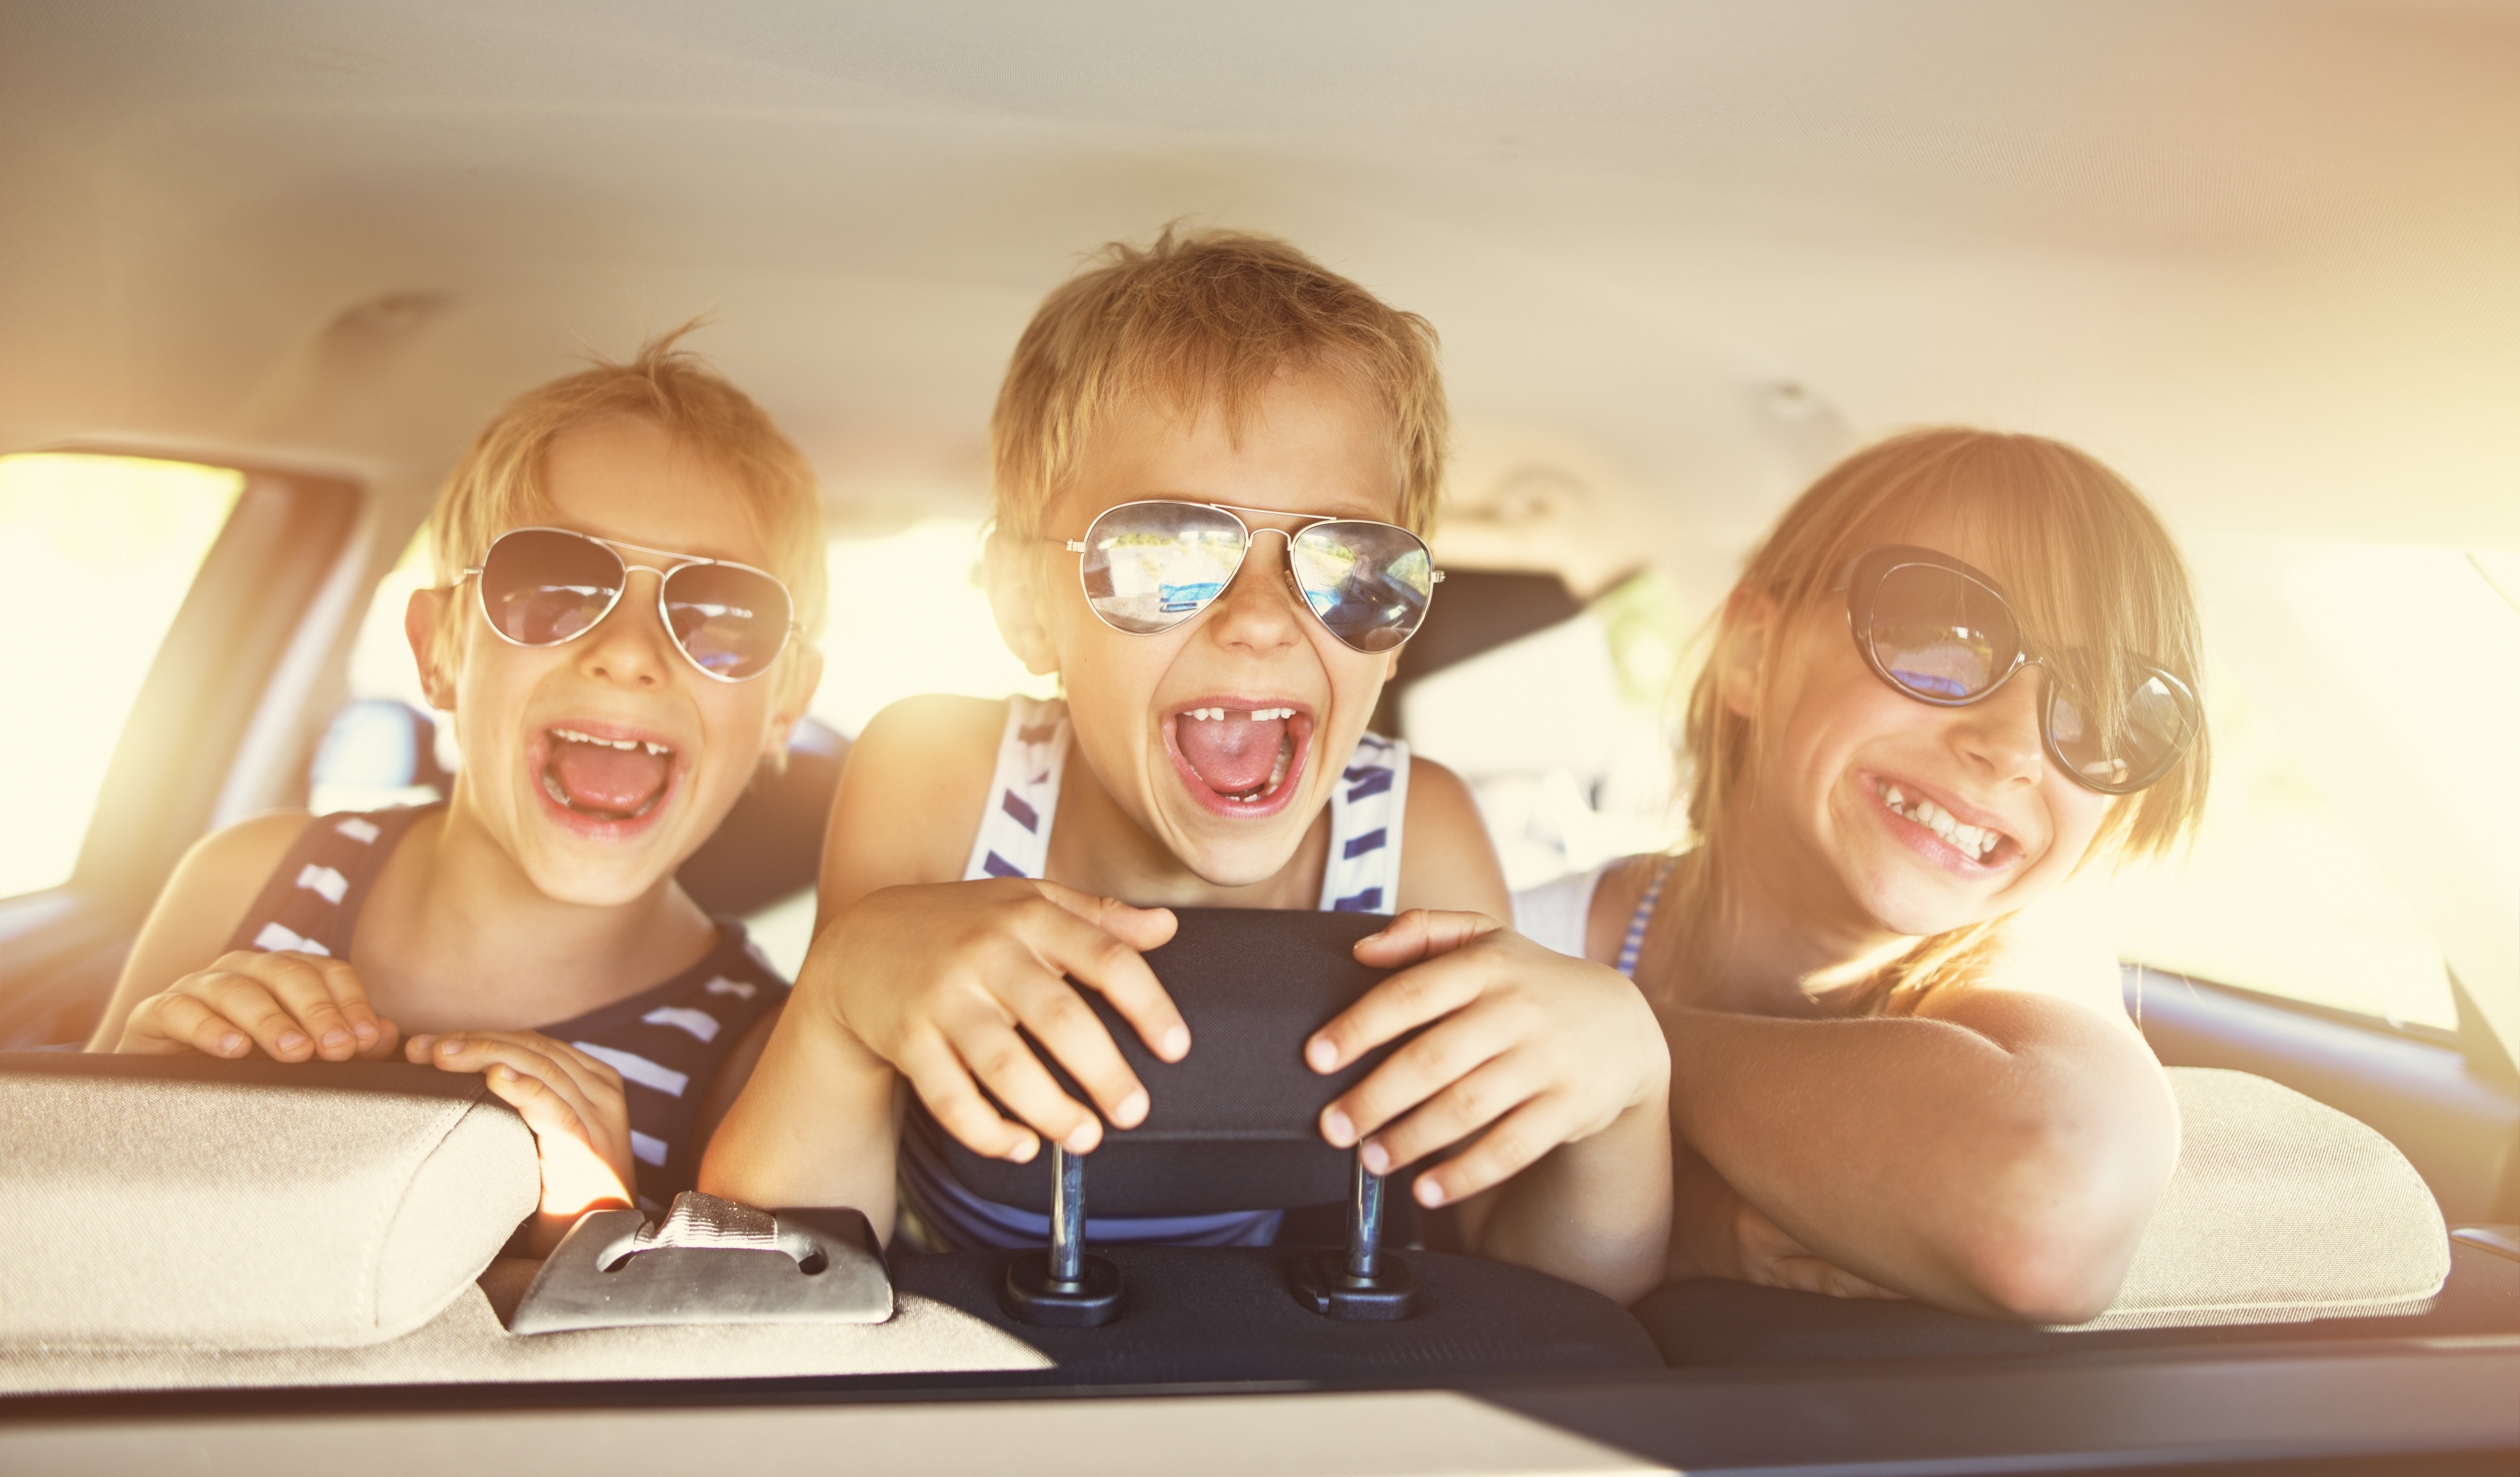 Three kids laughing in car on a road trip. Kids are aged 10 and 7. The kids are laughing and looking backward. Sunny summer day.